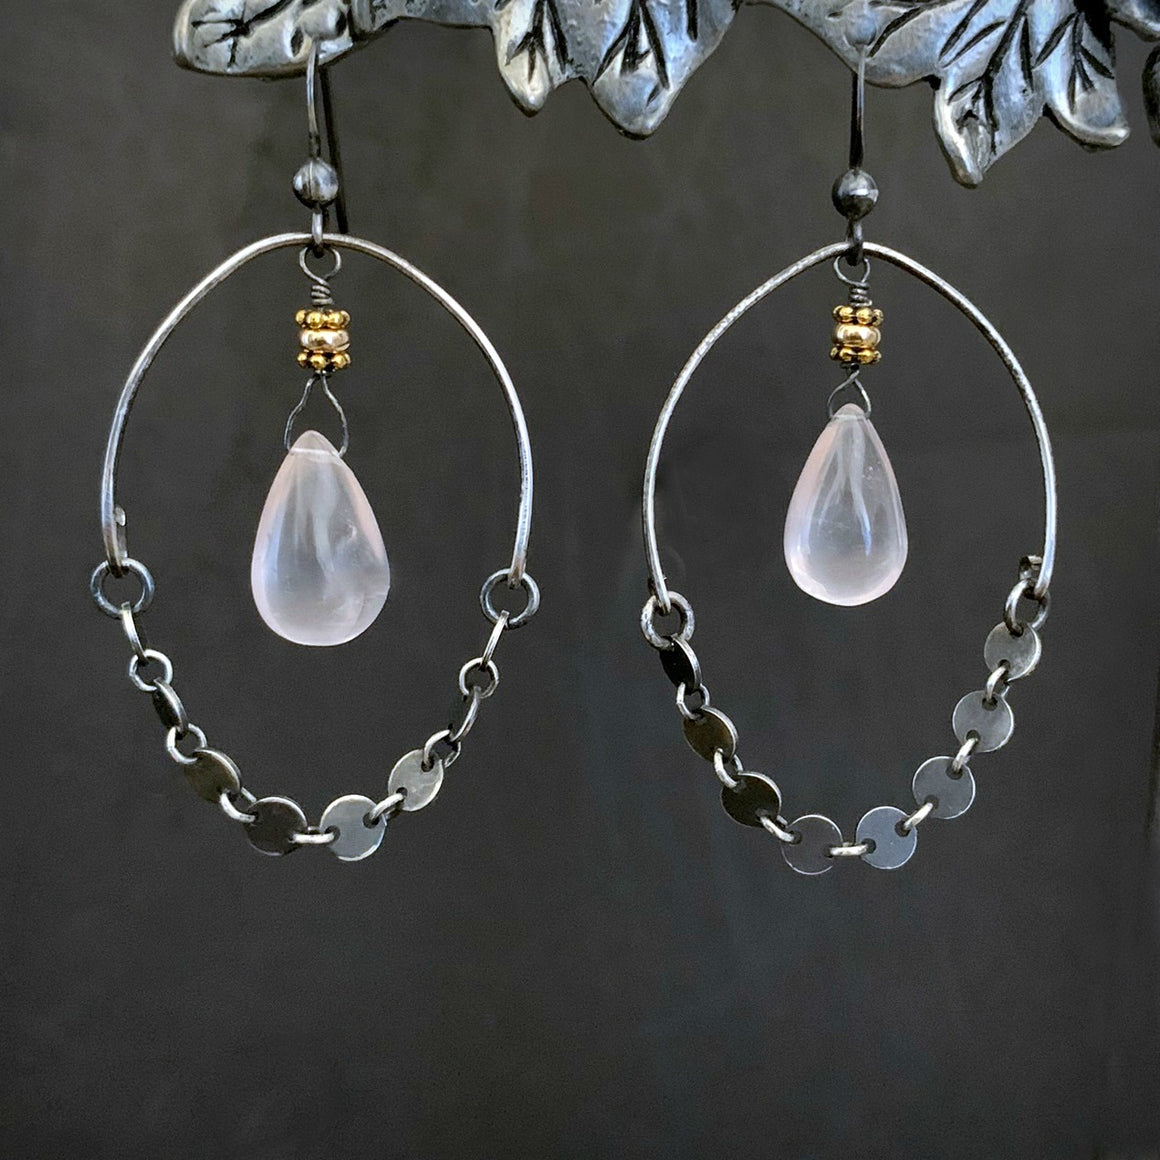 Long ROSE QUARTZ Sterling Silver Chain Dangle Hoop Earrings - ViaLove Designs